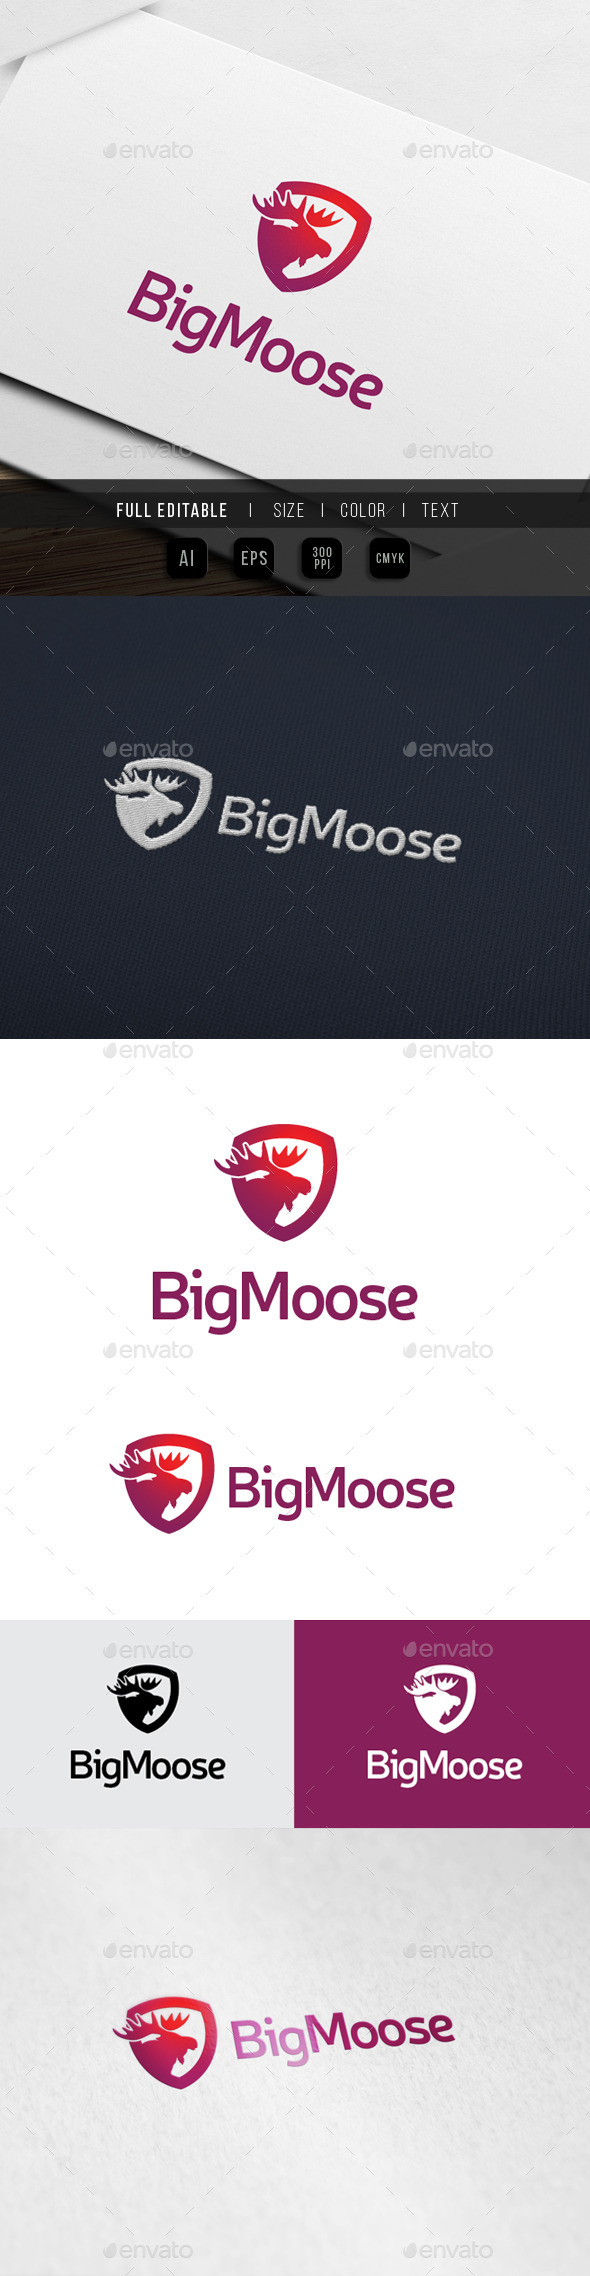 Big Moose Studio - Animals Logo Templates